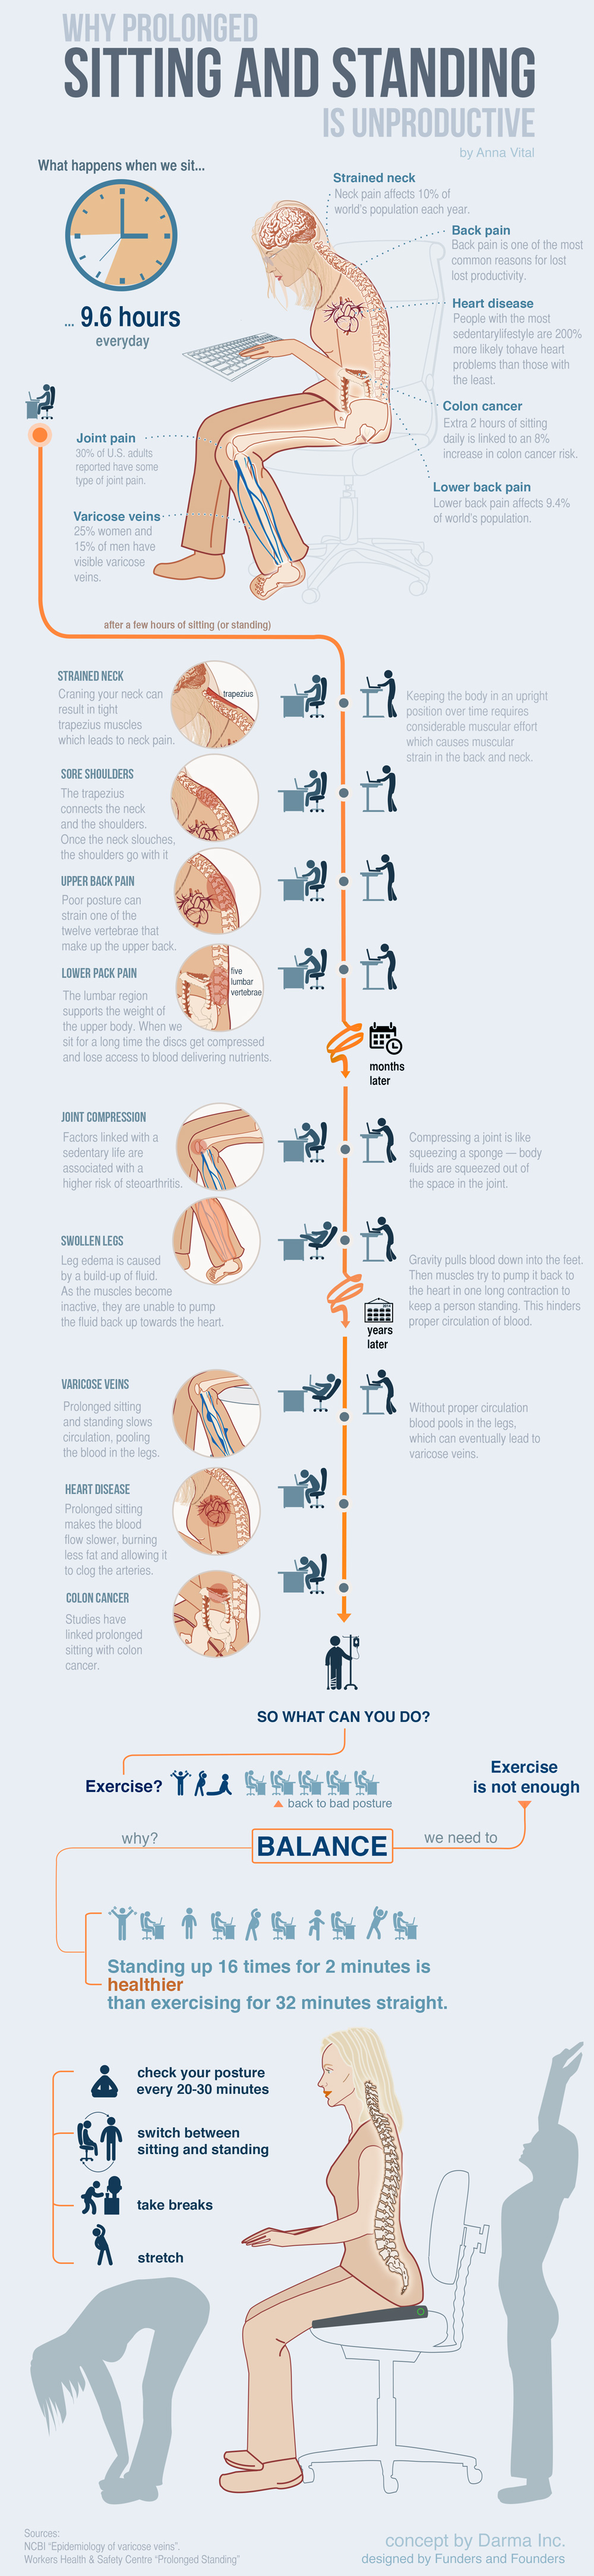 An Ultimate Guide To Sitting And Standing Productively - Infographic